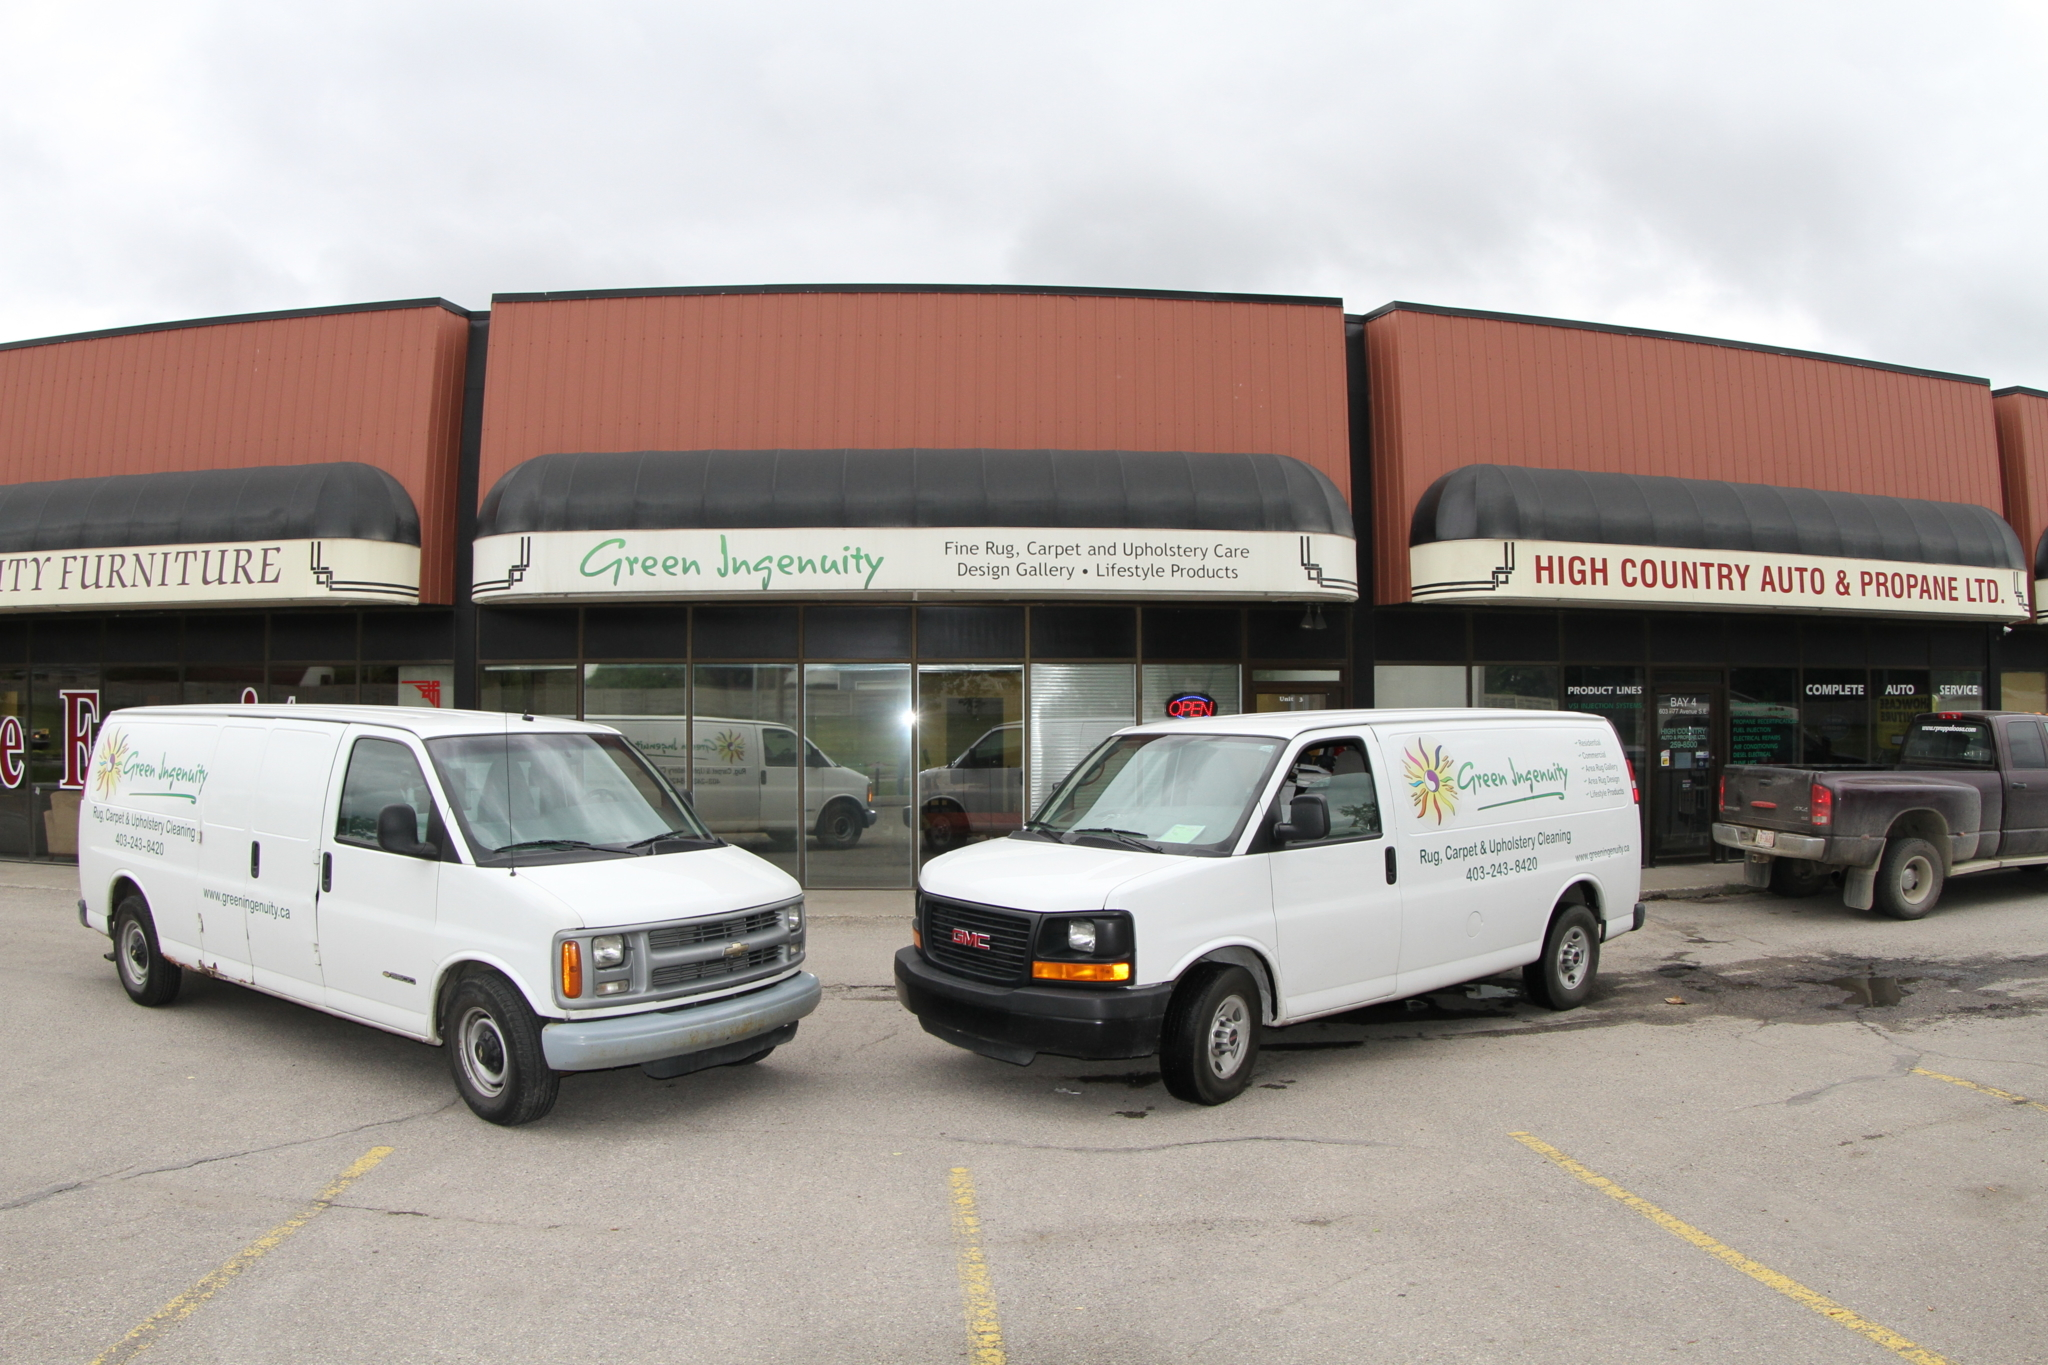 Green Ingenuity Inc in Calgary: Green Ingenuity - Rug, Carpet and Upholstery Cleaning